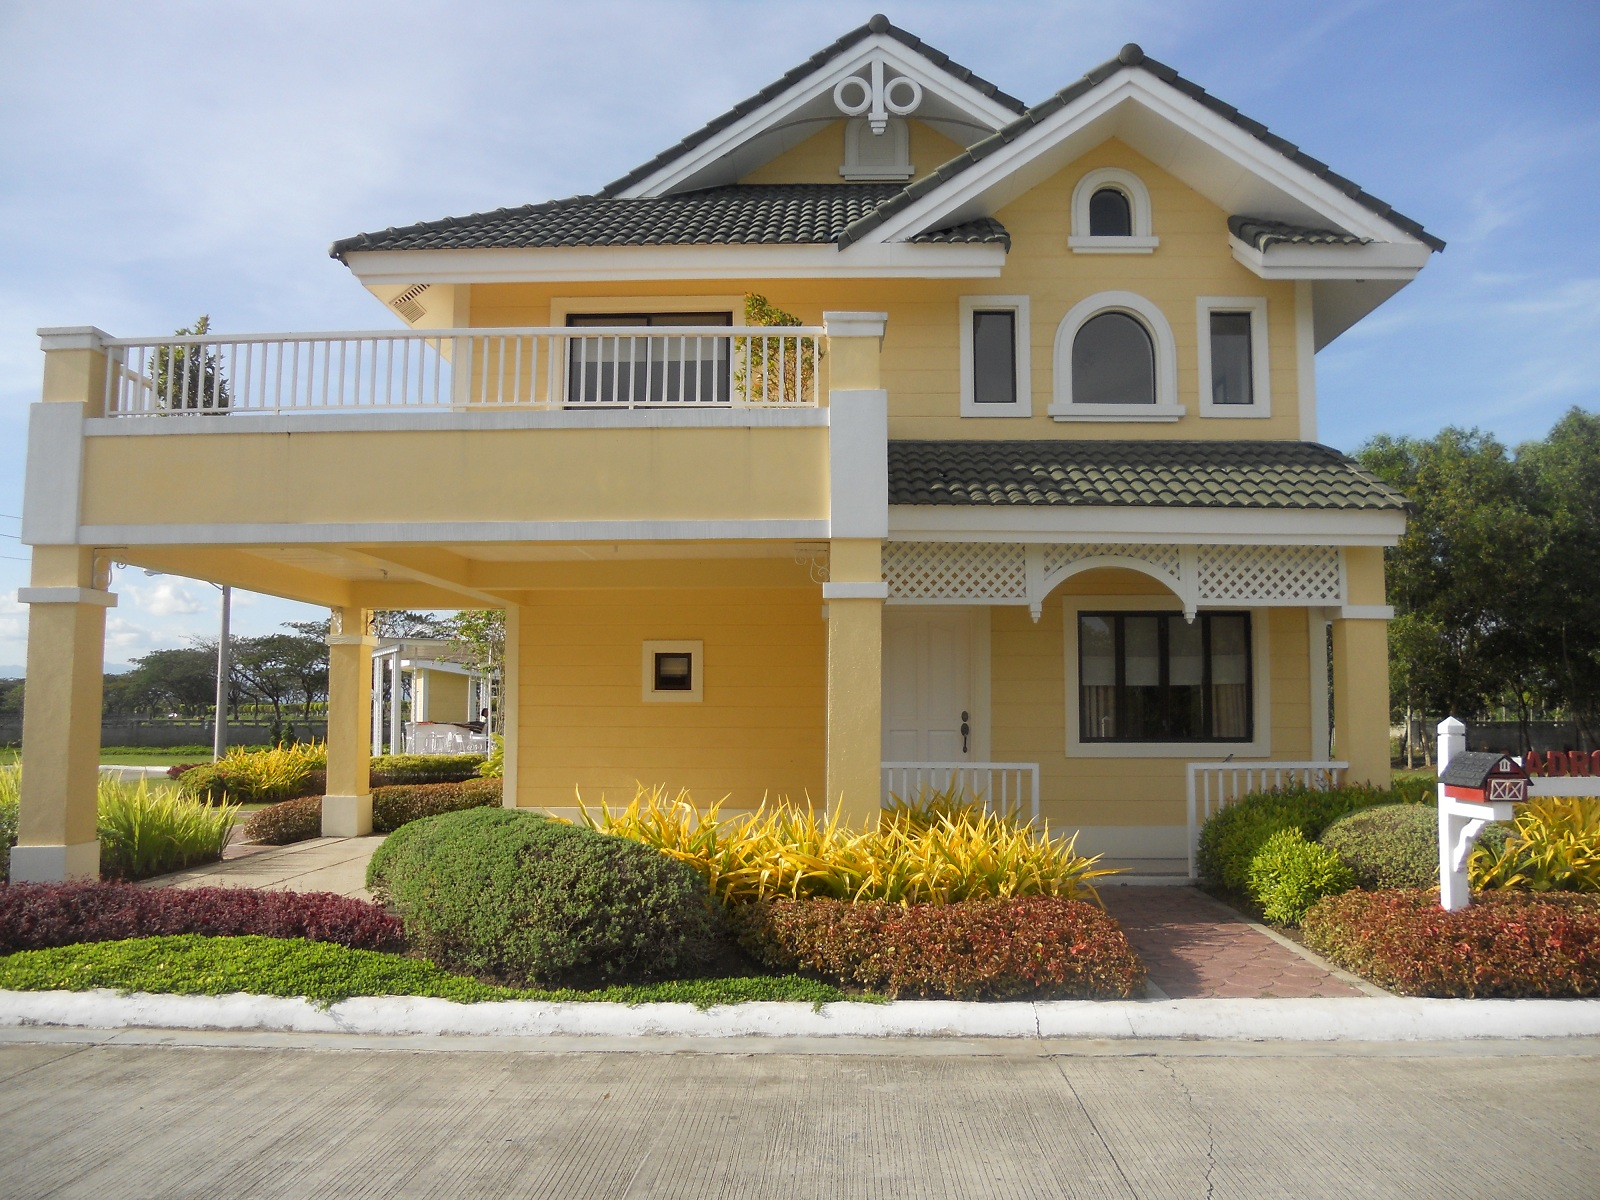 Lladro model house of savannah crest iloilo by camella for Building model houses